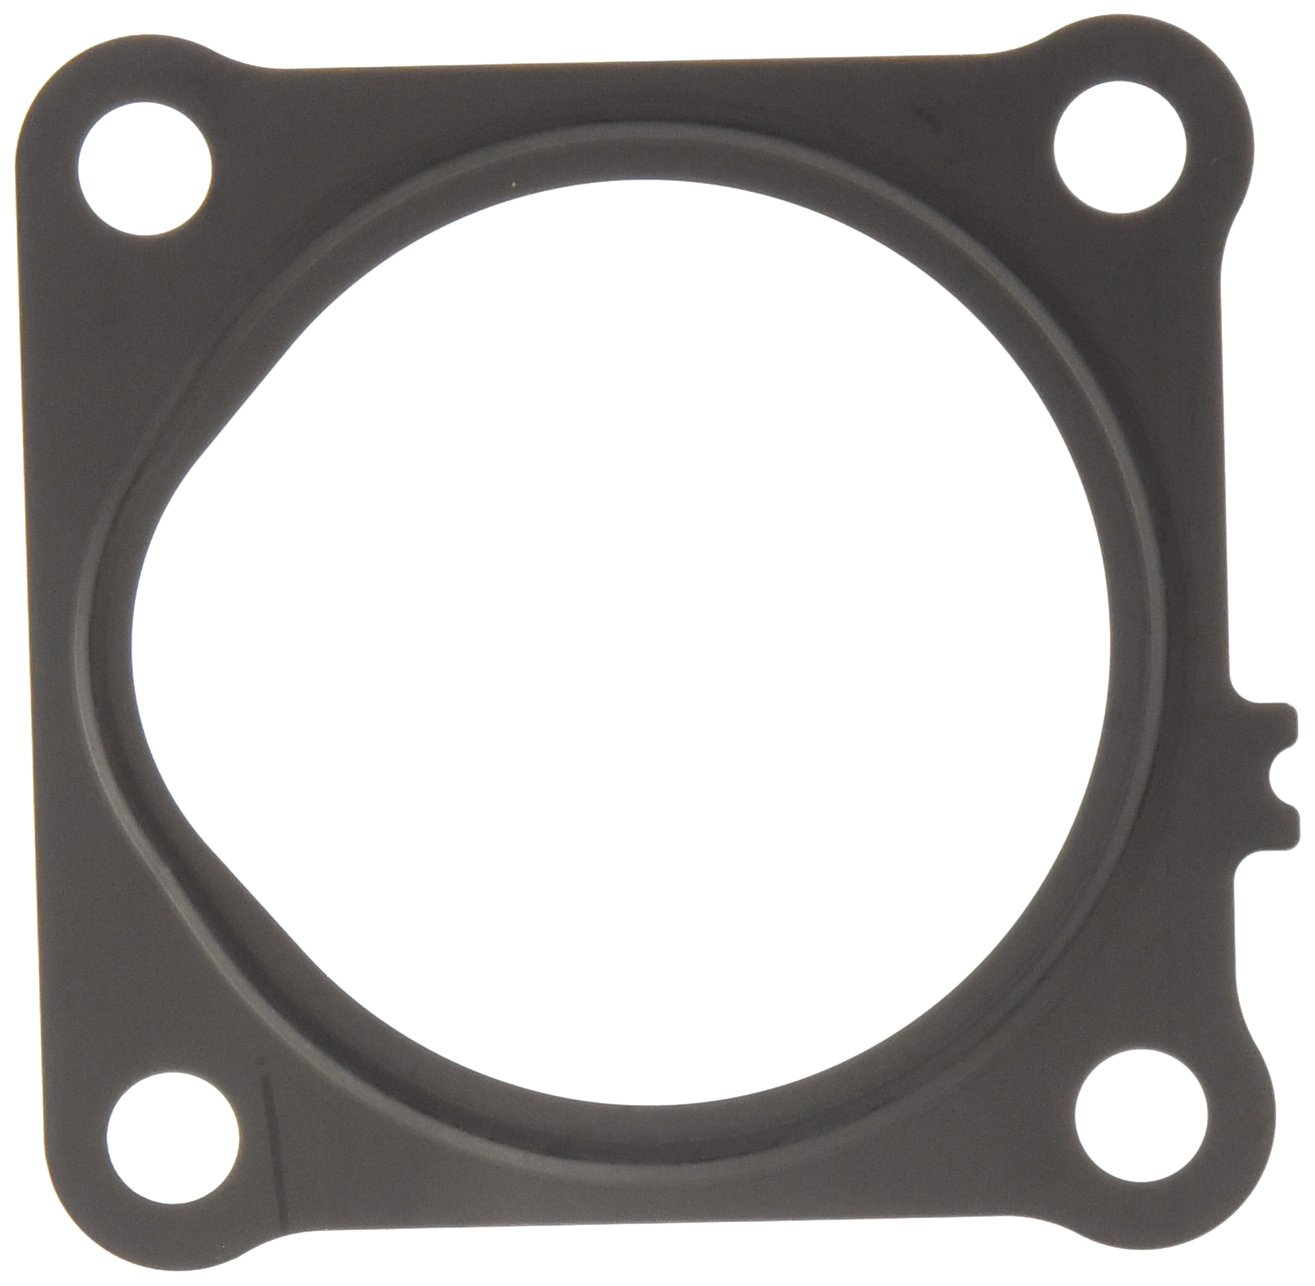 Toyota 22271-0A031 Fuel Injection Throttle Body Mounting Gasket